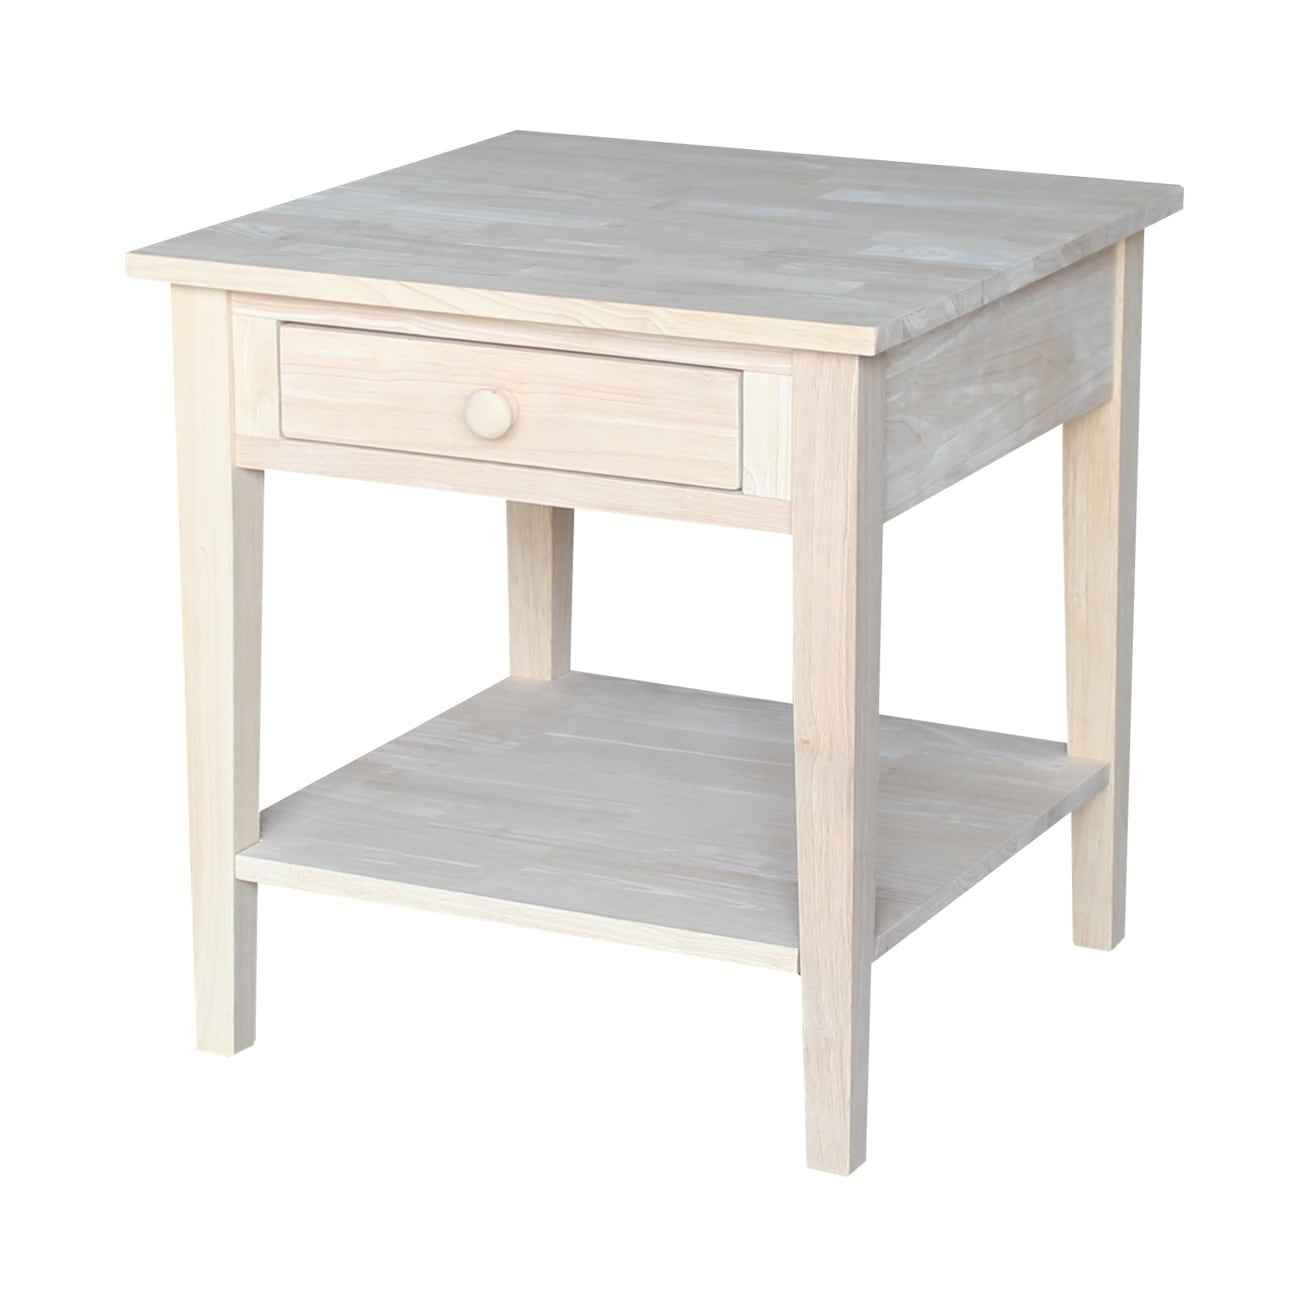 spencer square unfinished solid parawood end table free raw wood accent shipping today short narrow small round nightstand waterproof furniture covers rectangular side gray wicker